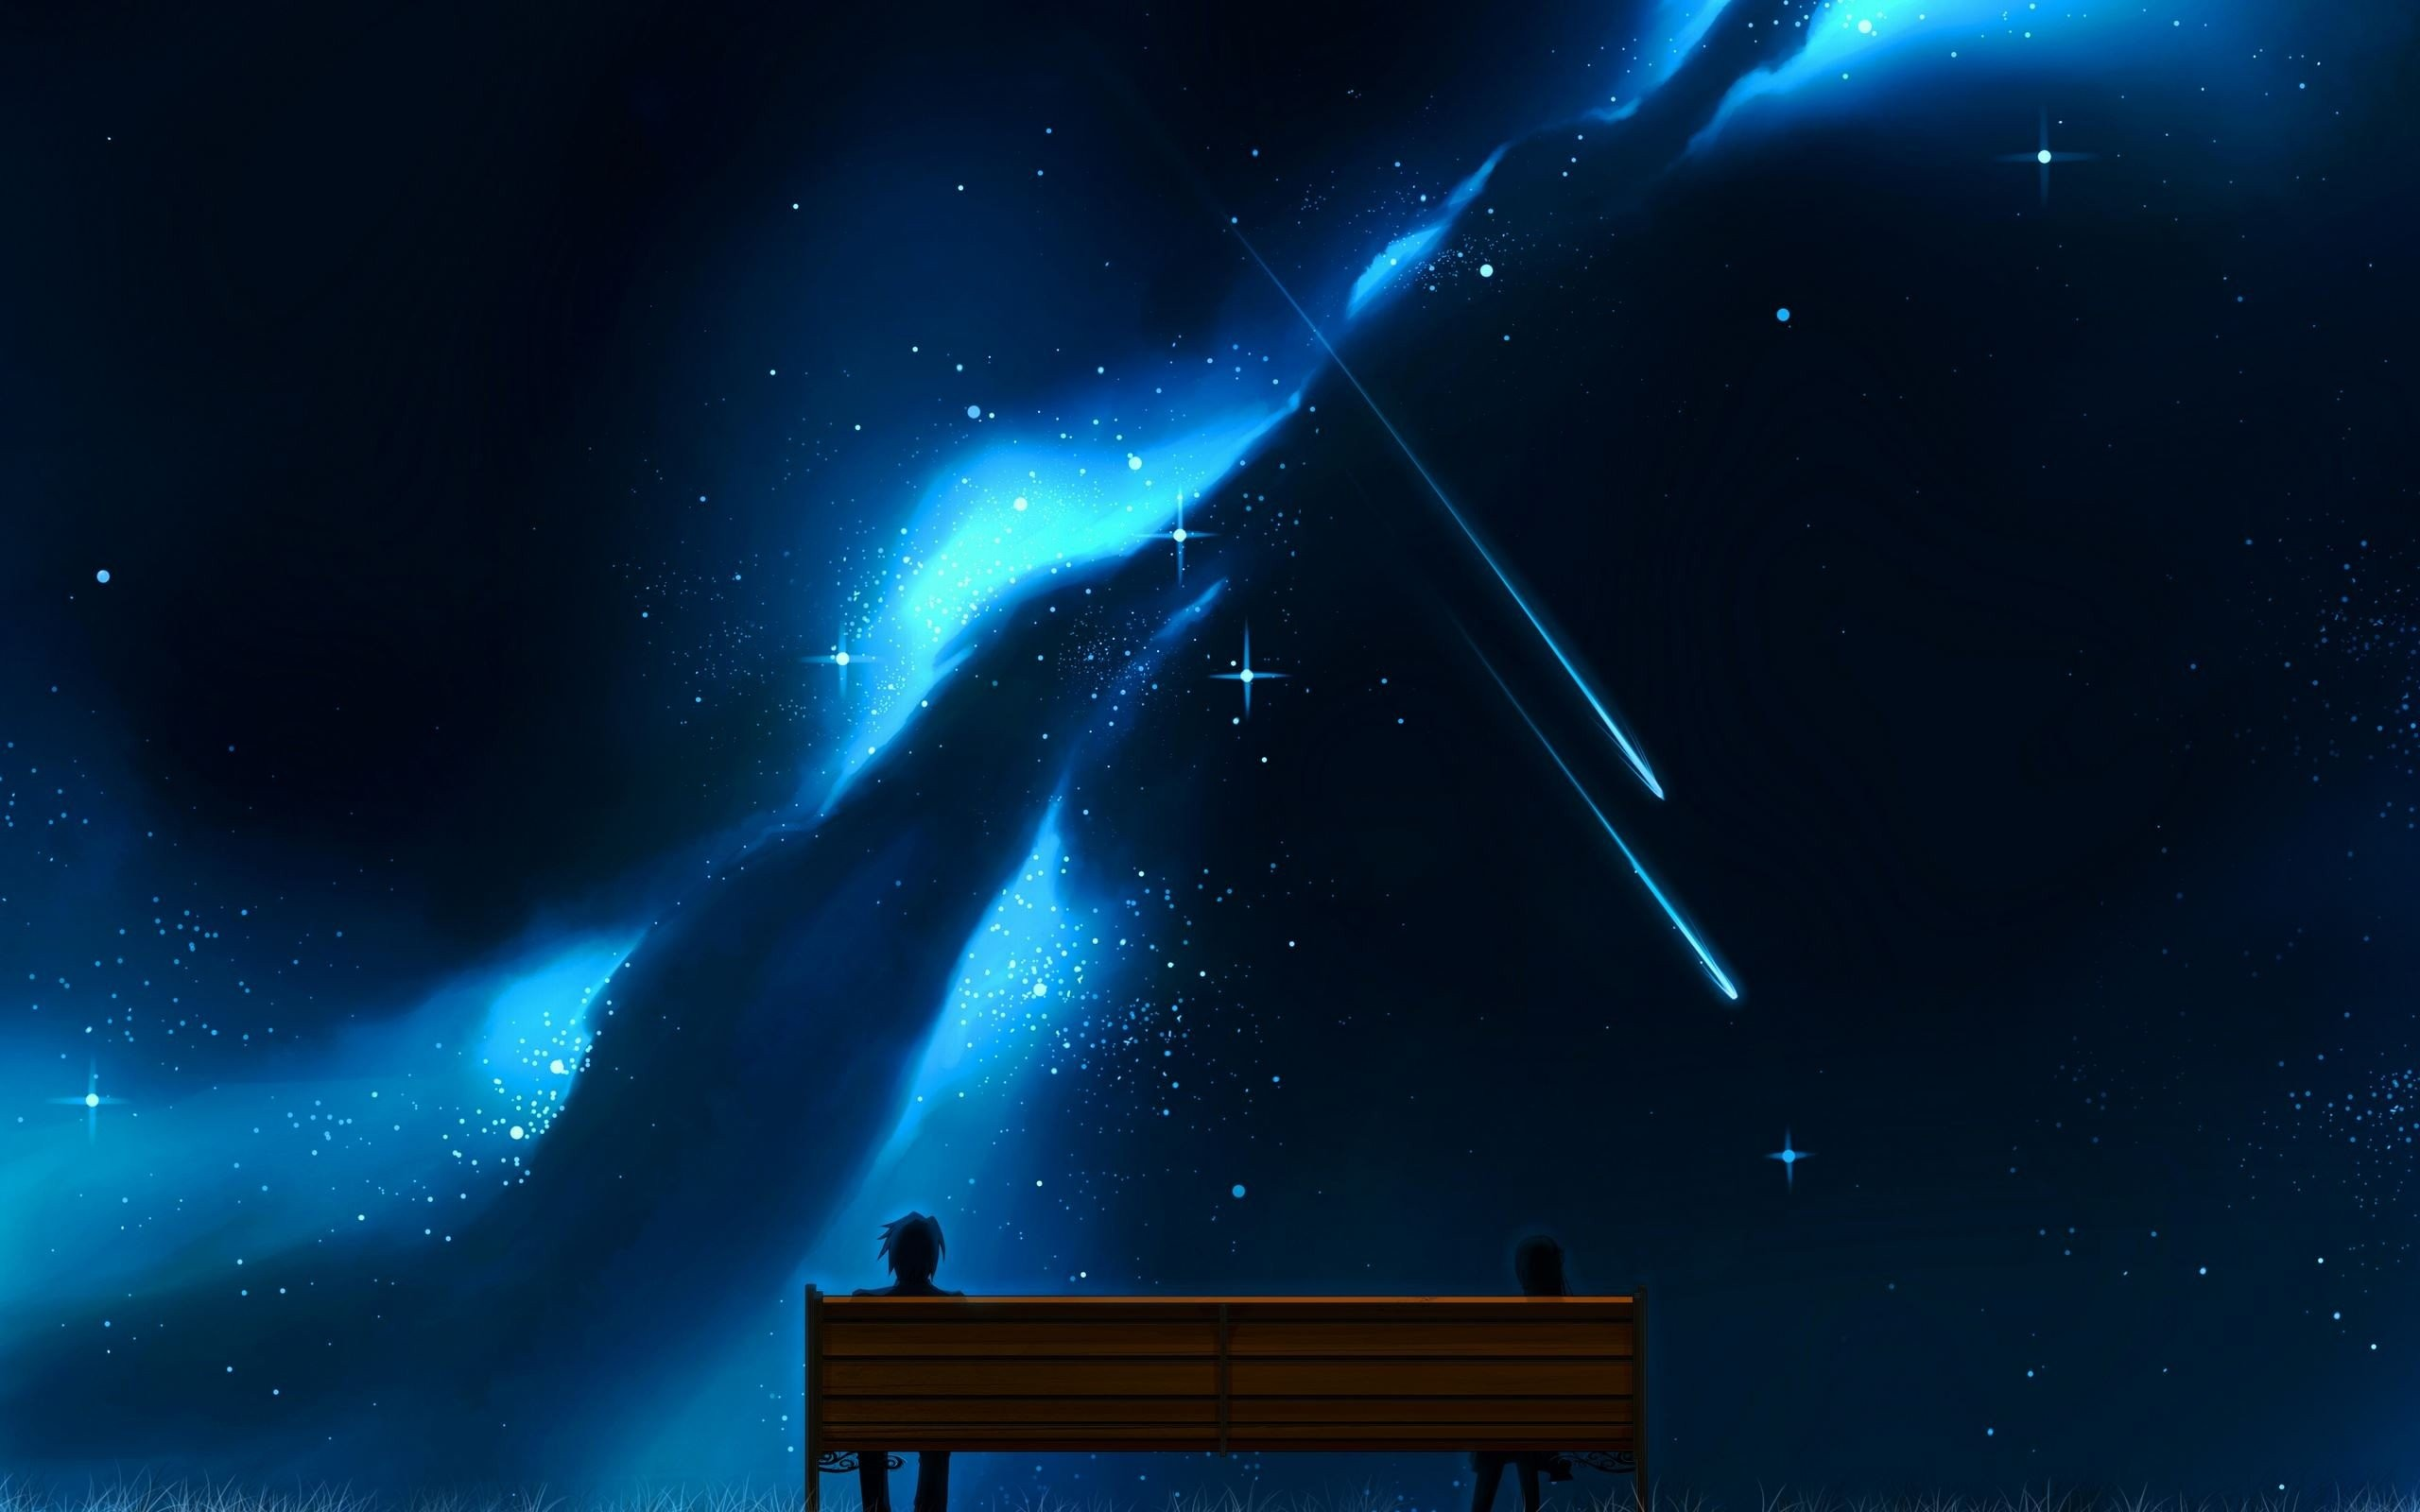 Must see Wallpaper High Resolution Night Sky - 228719-dark-anime-background-scenery-2560x1600-for-iphone-6  2018_869573.jpg